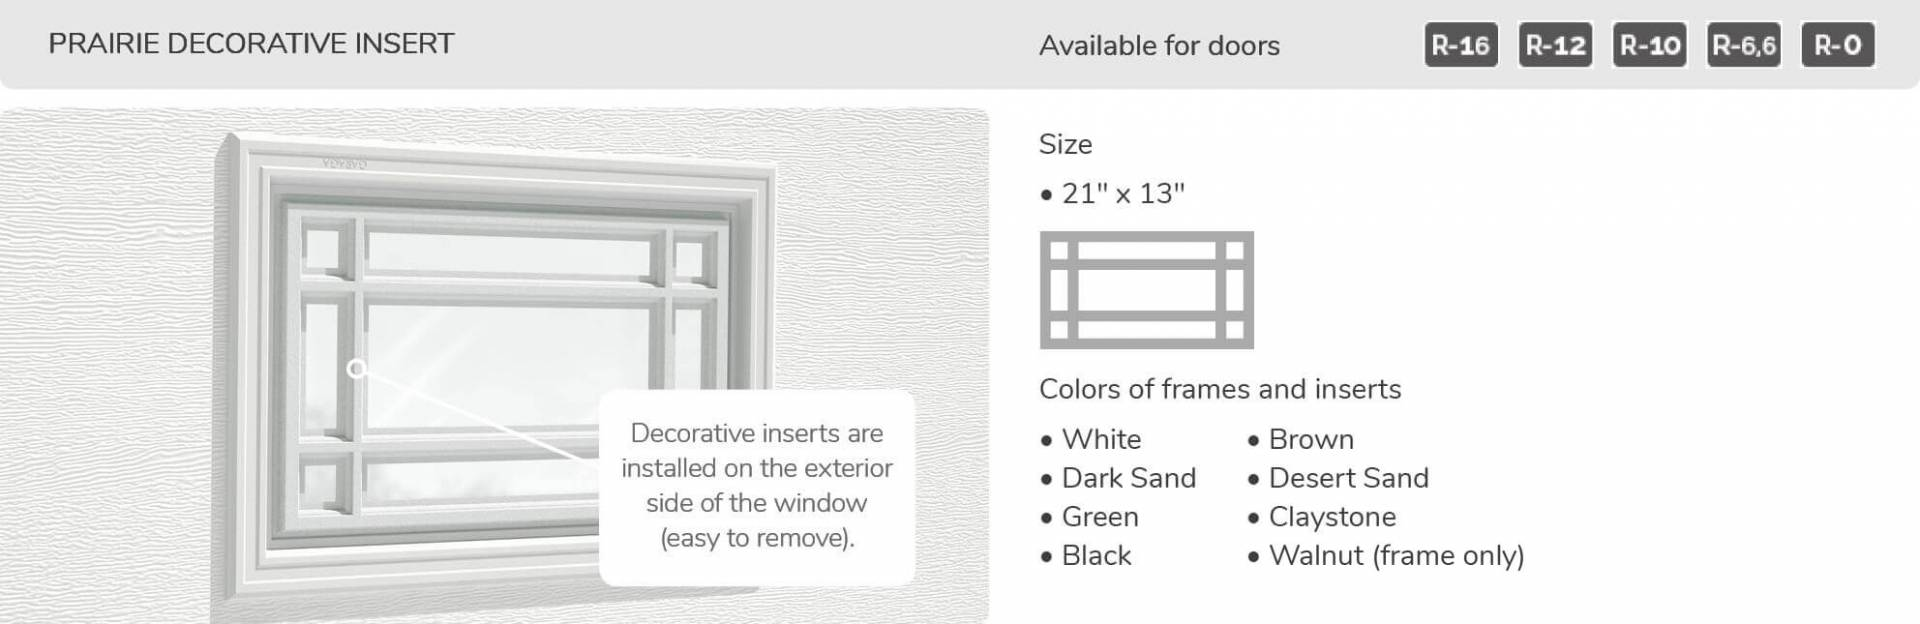 Prairie Decorative Insert, 21' x 13', available for doors R-16, R-12, R-10, R-6,6 and R-0